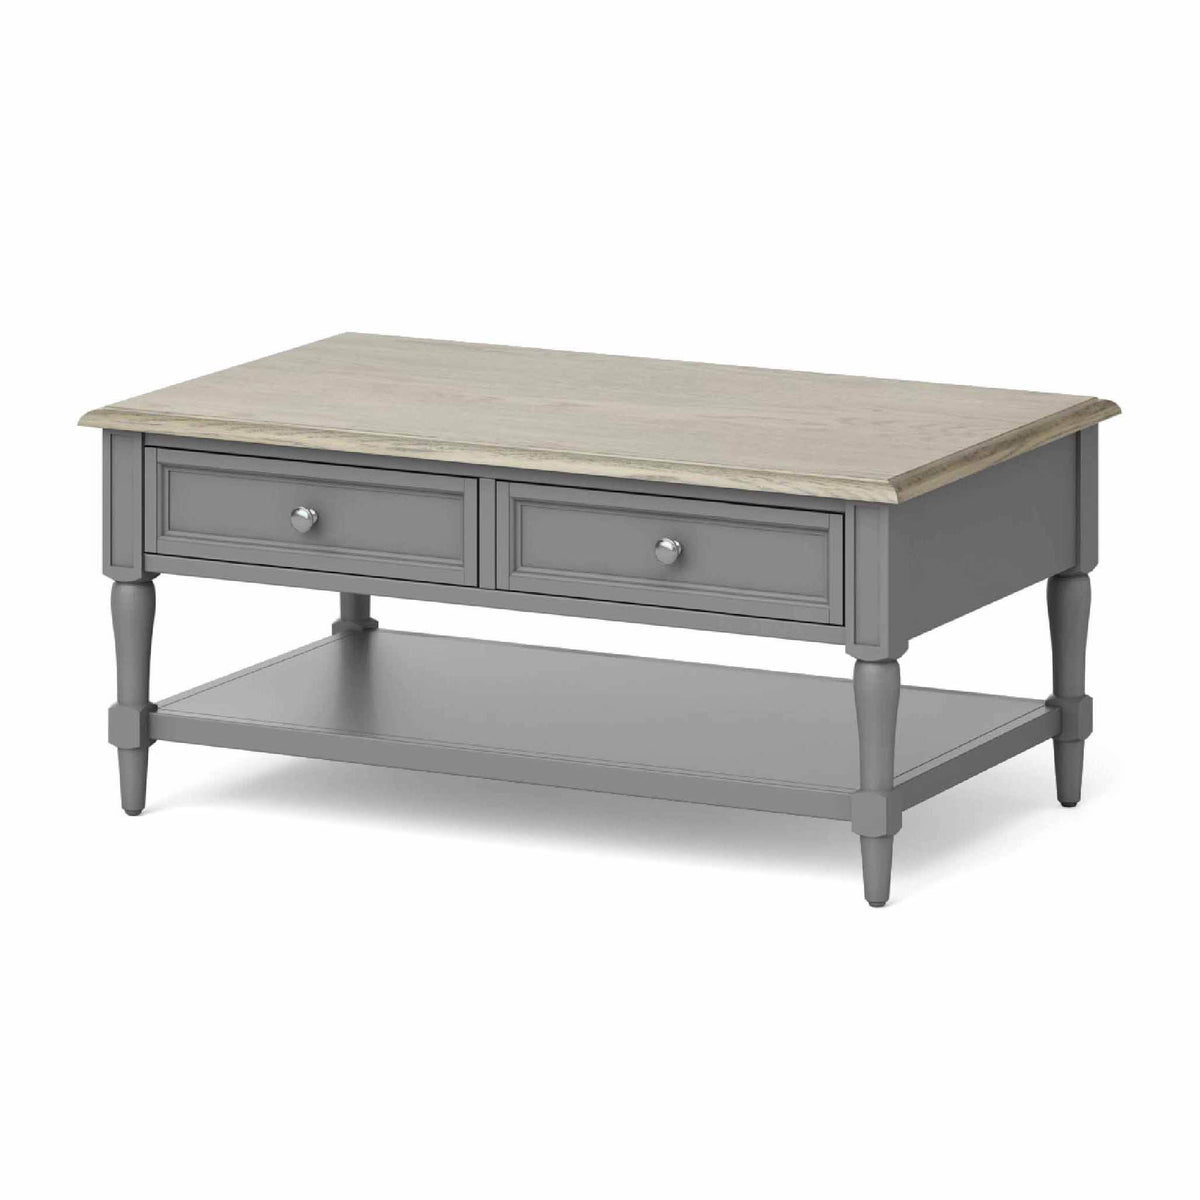 The Mulsanne Grey Coffee Table